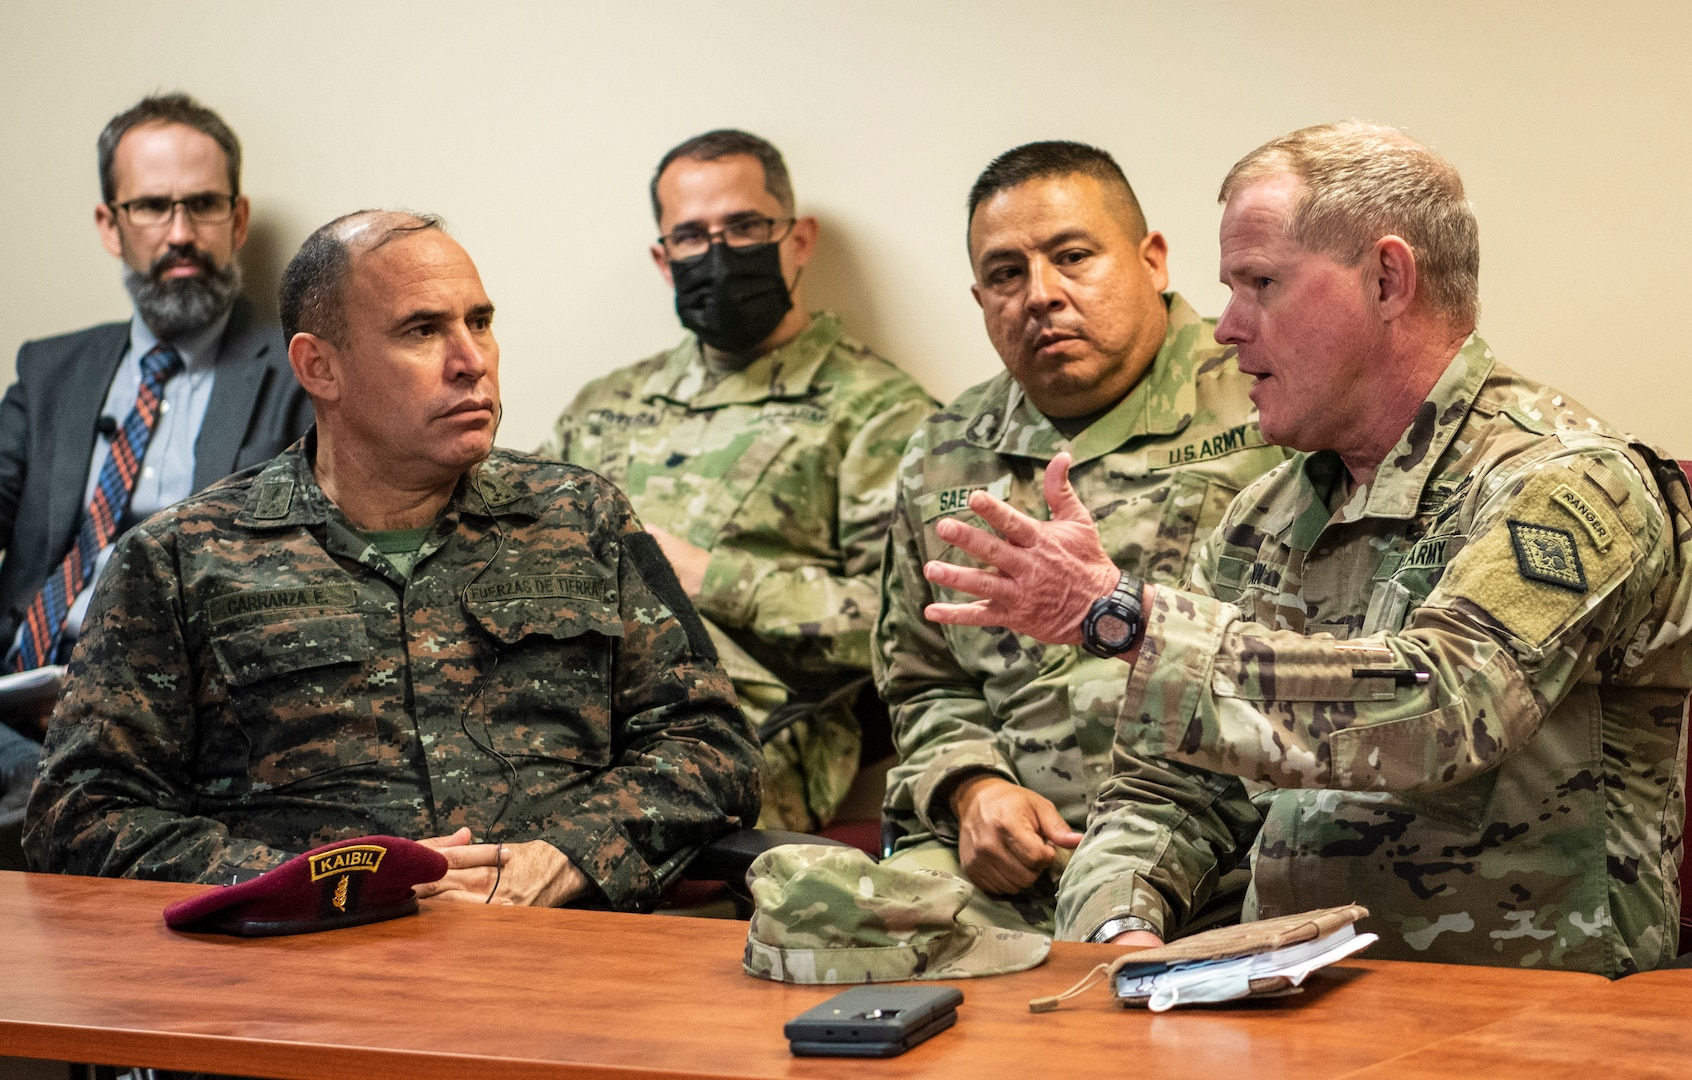 Maj. Gen. Kendall Penn, right, the Arkansas National Guard adjutant general, speaks with Maj. Gen Walfre Omar Carranza España, the Guatemalan chief of defense, during a May 13, 2021, briefing in North Little Rock about the Arkansas National Guard's role in statewide emergencies. Arkansas and Guatemala, paired together since 2002 in the National Guard Bureau's State Partnership Program, have a rich history of military and cultural exchanges.